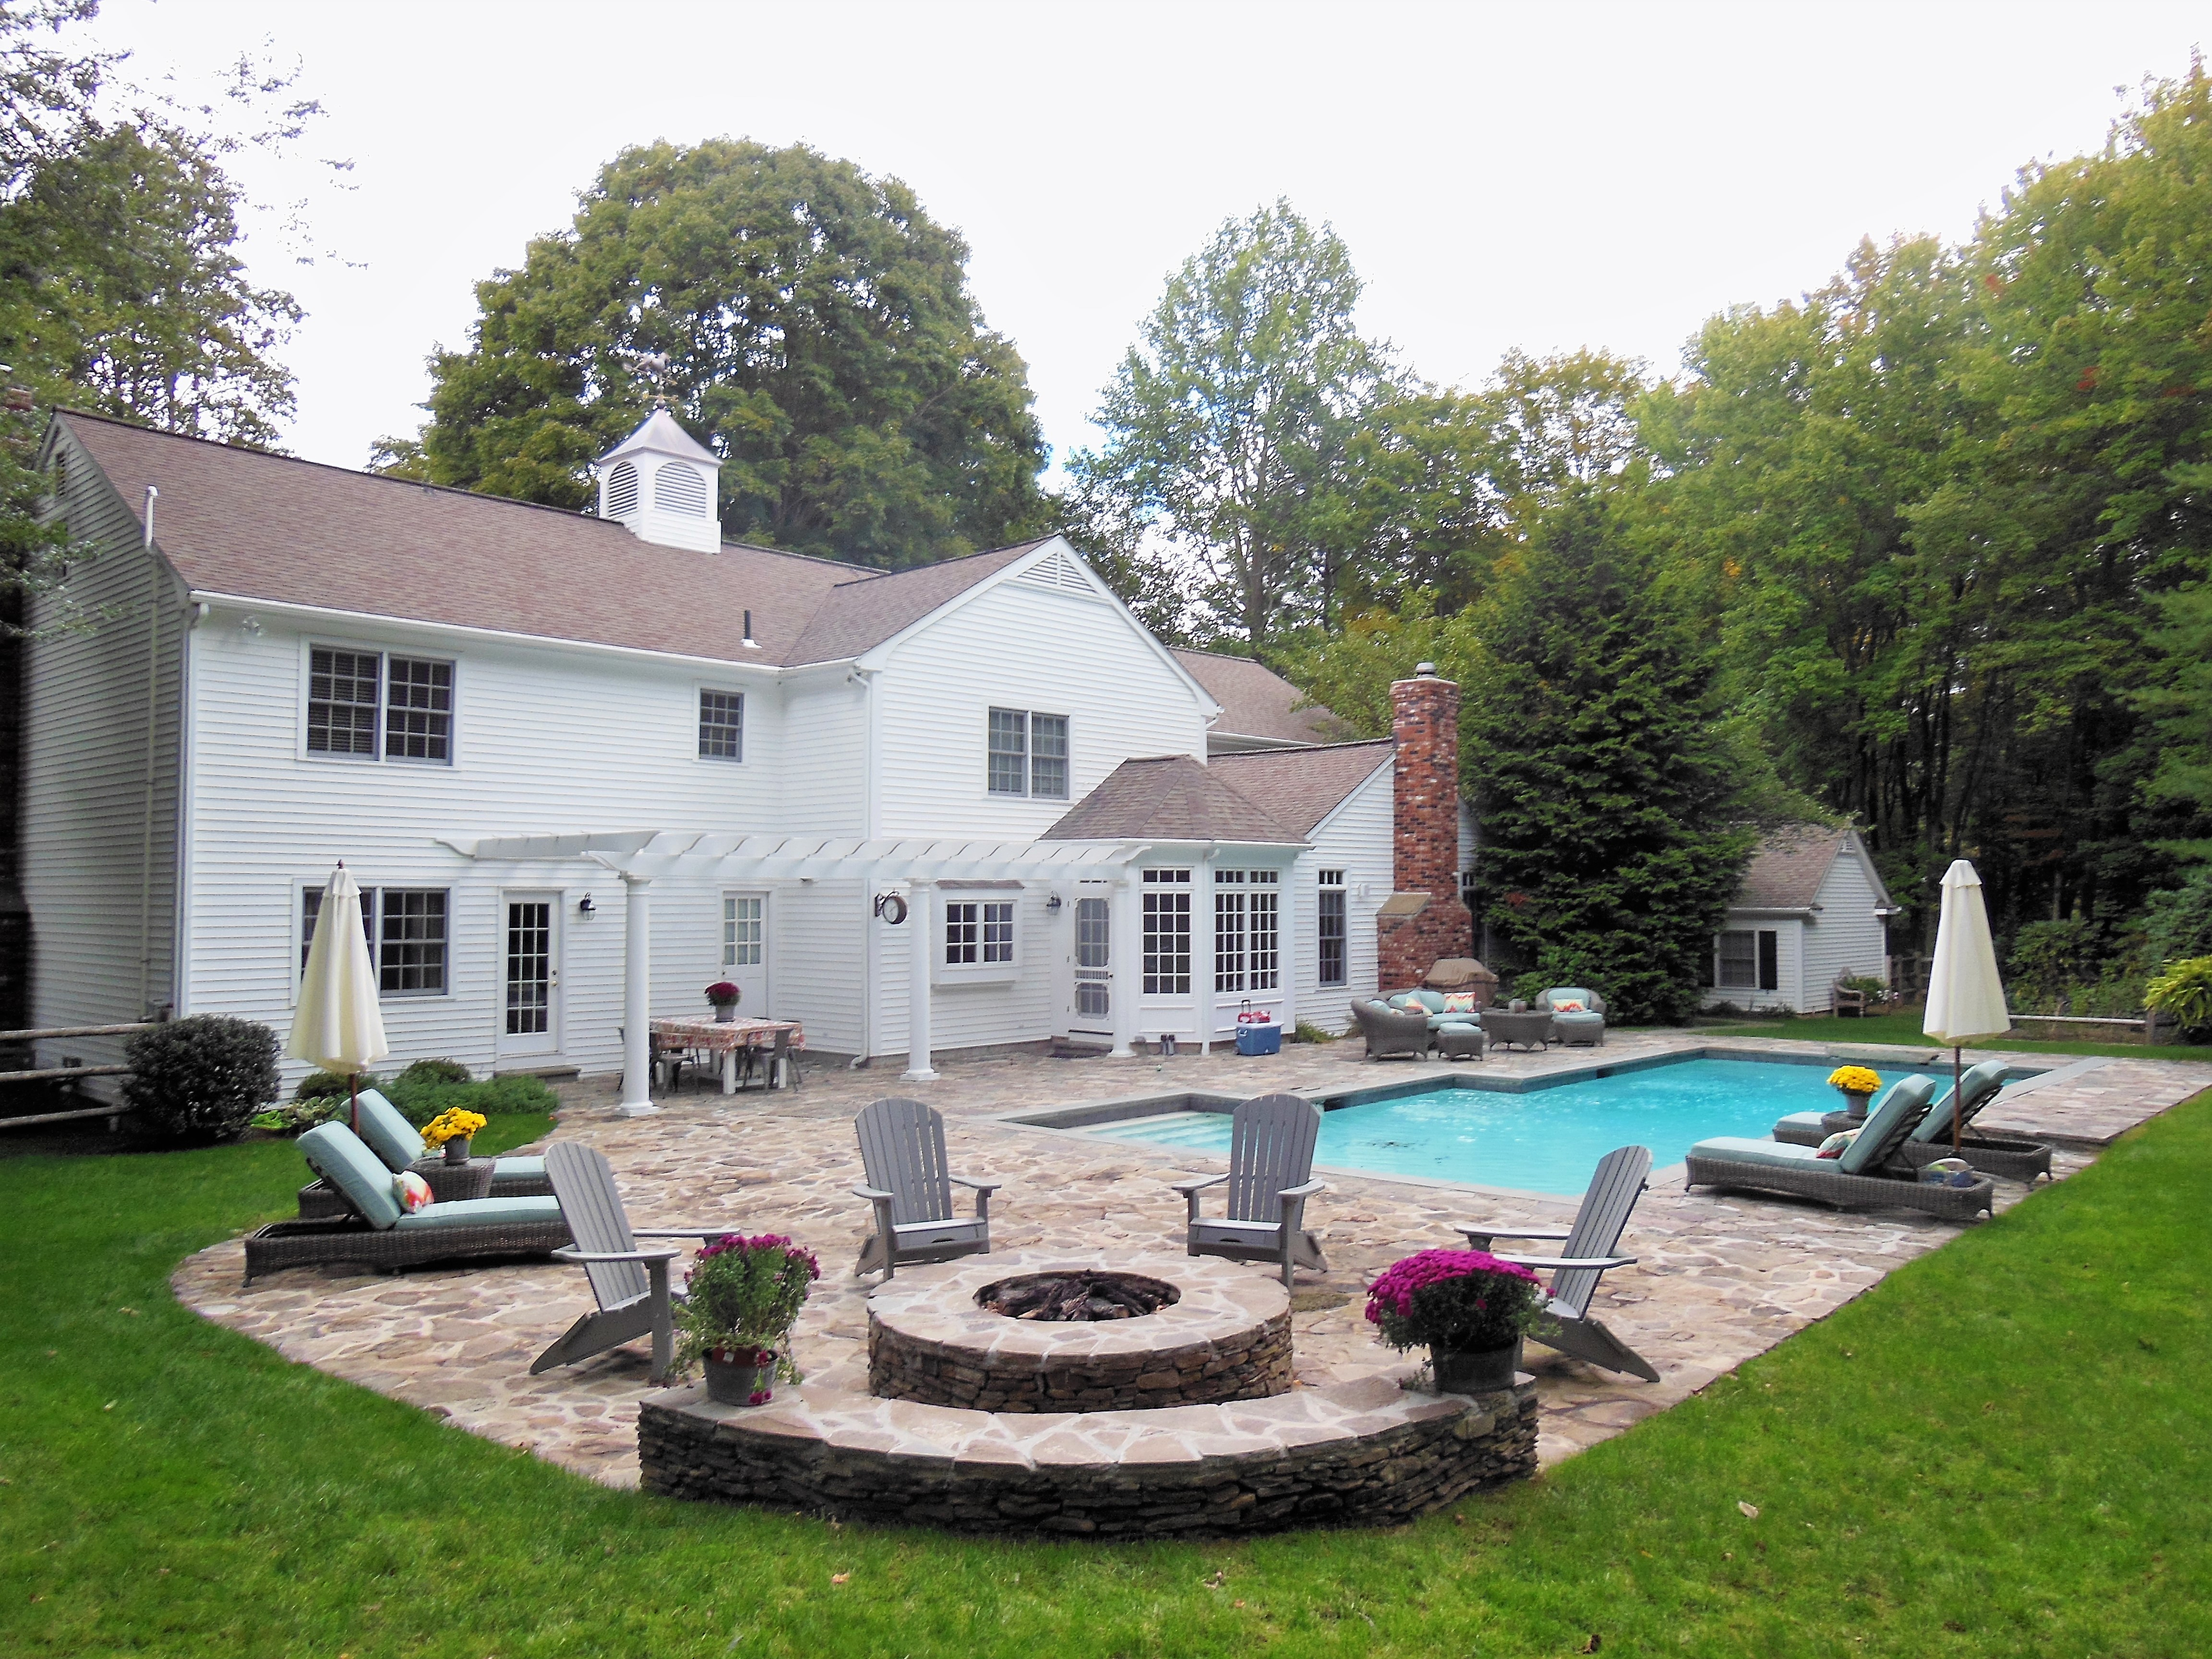 Outdoor Patio, Furniture and Pool